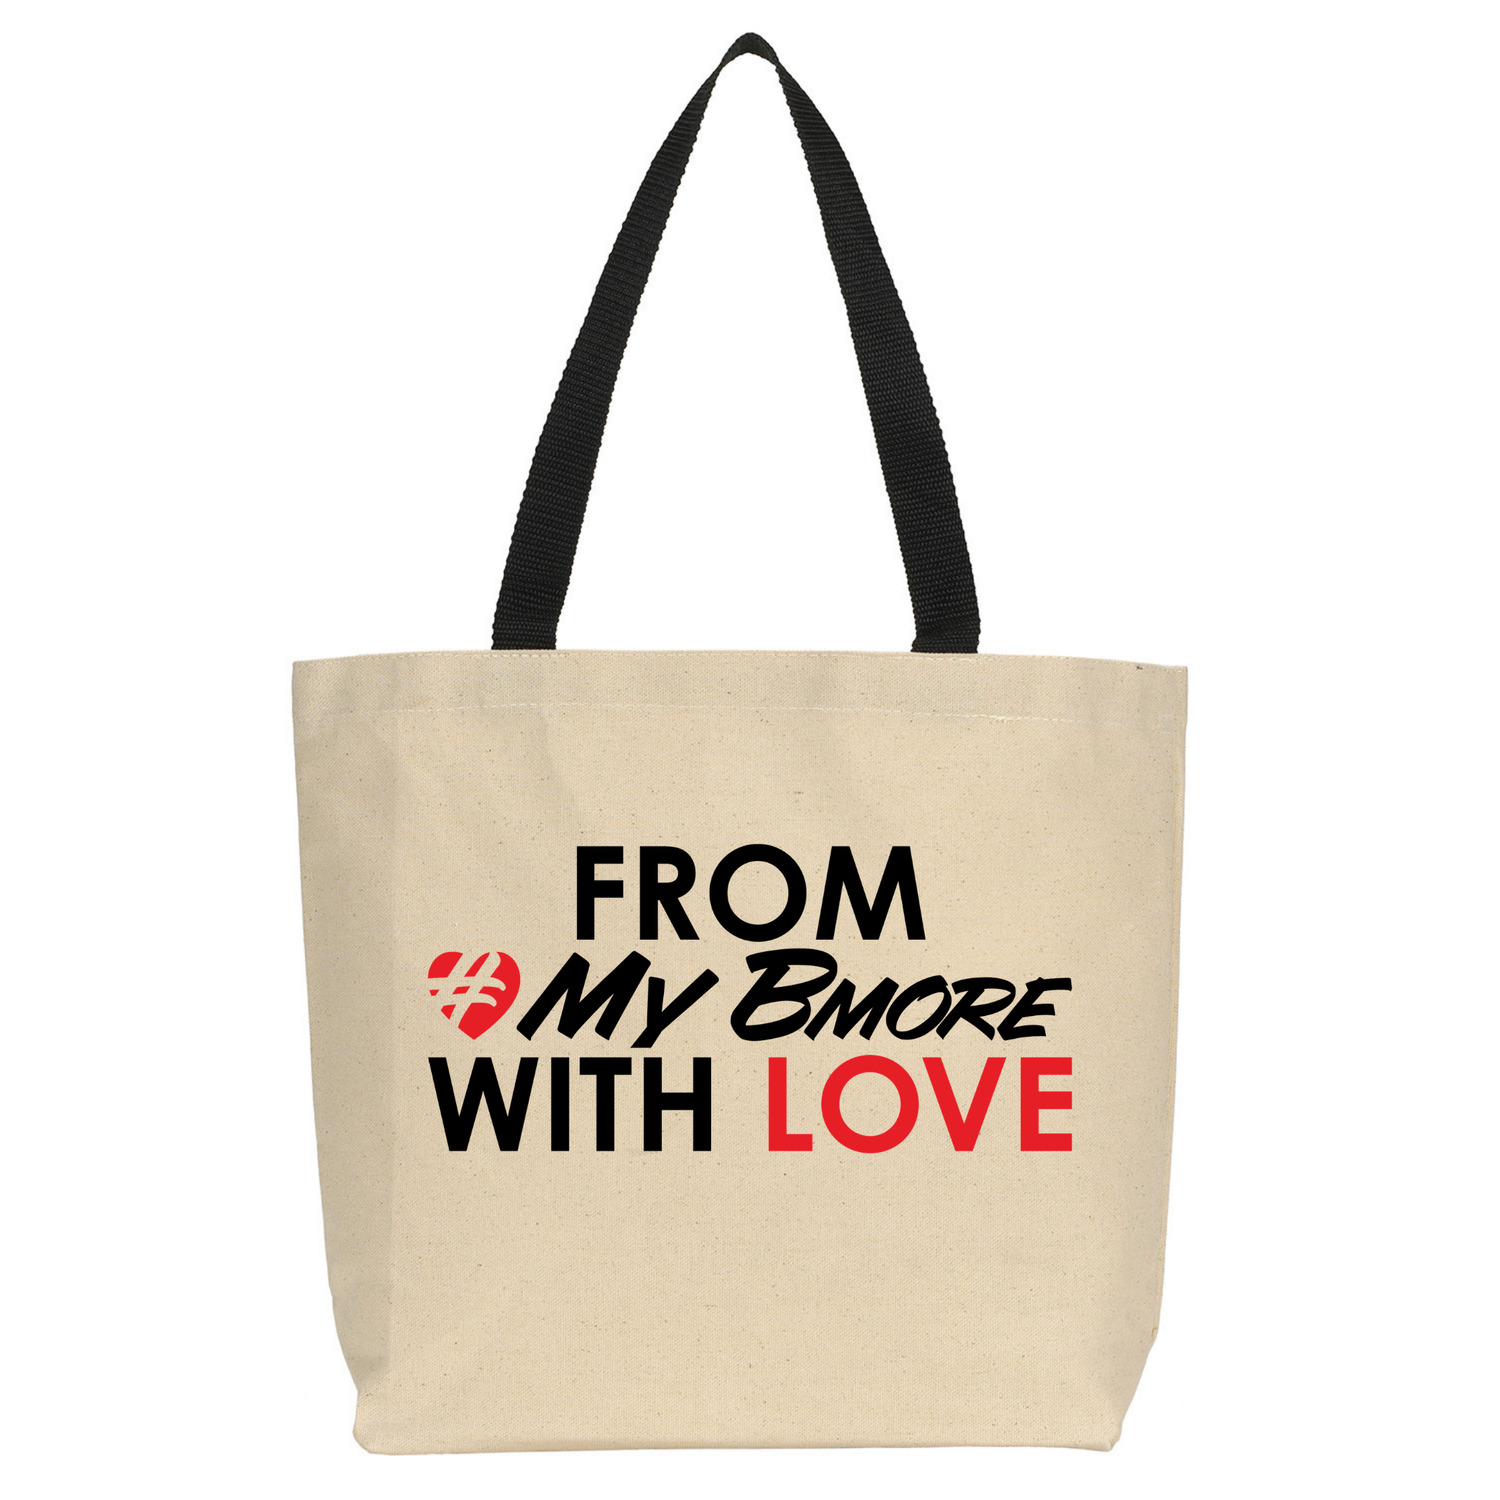 Image of From #MyBmore With Love - Tote Bag [Tan]